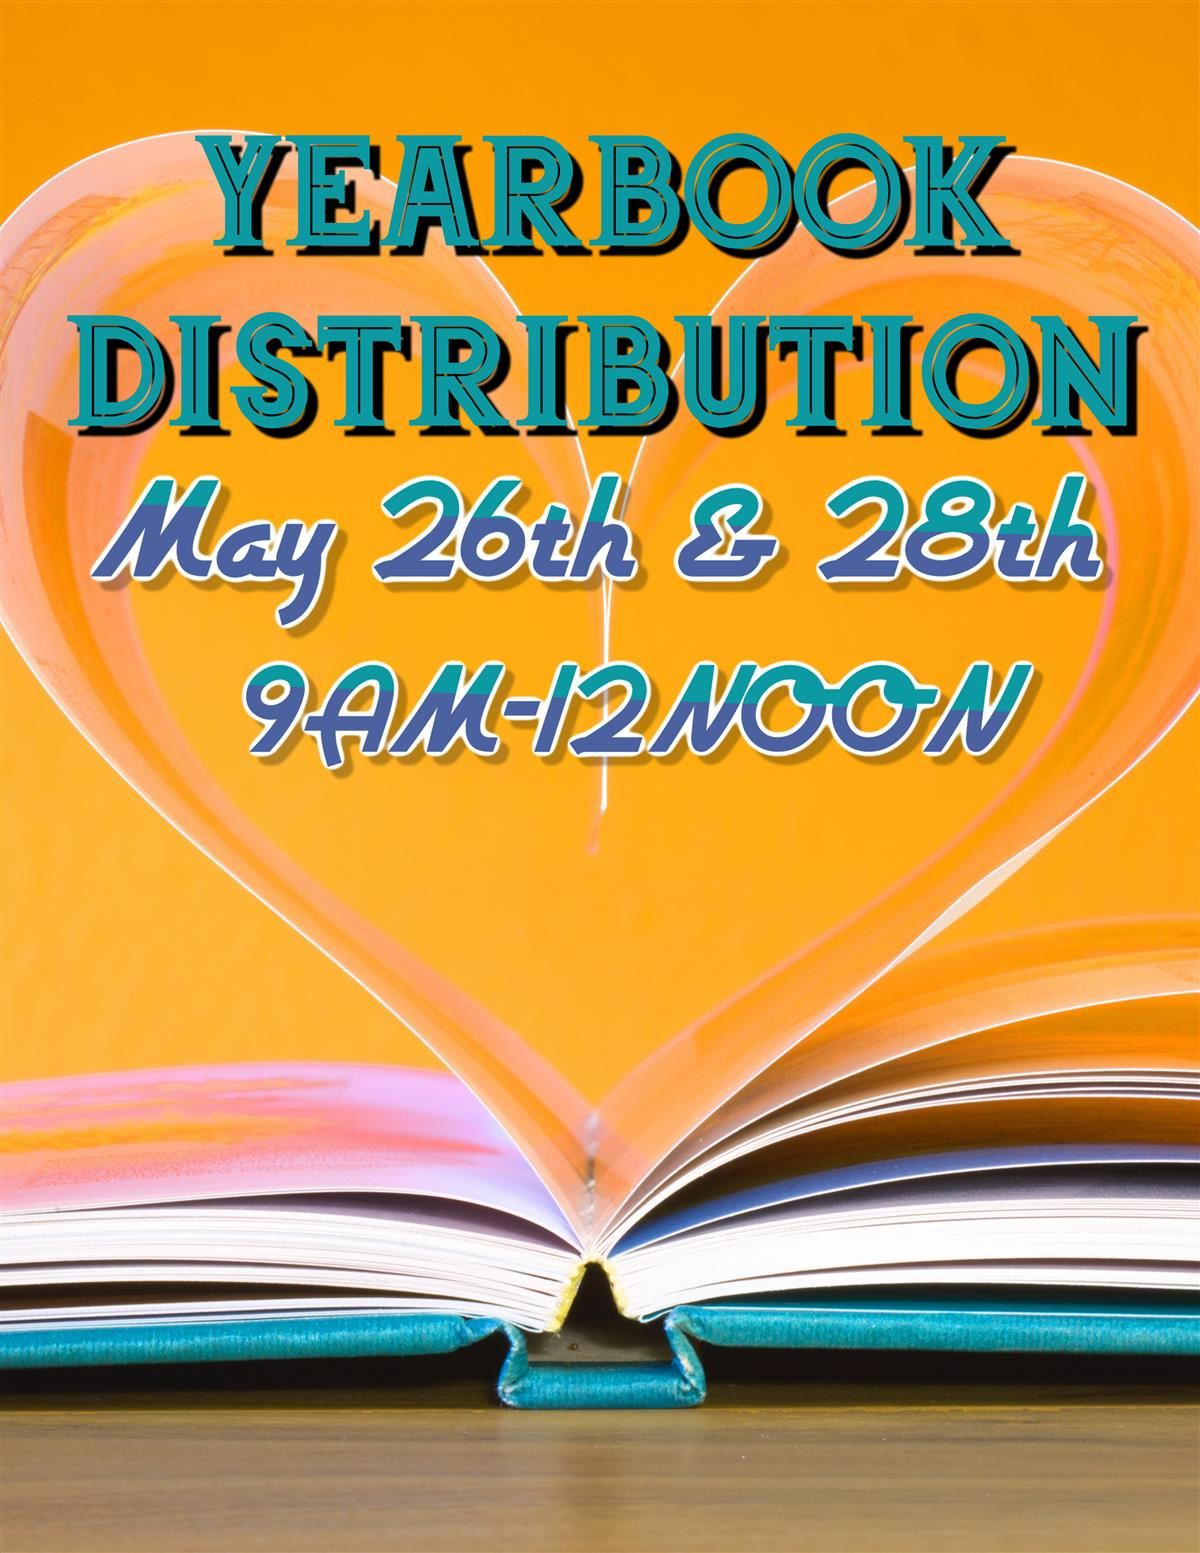 Yearbook distribution is May 26th and 28th